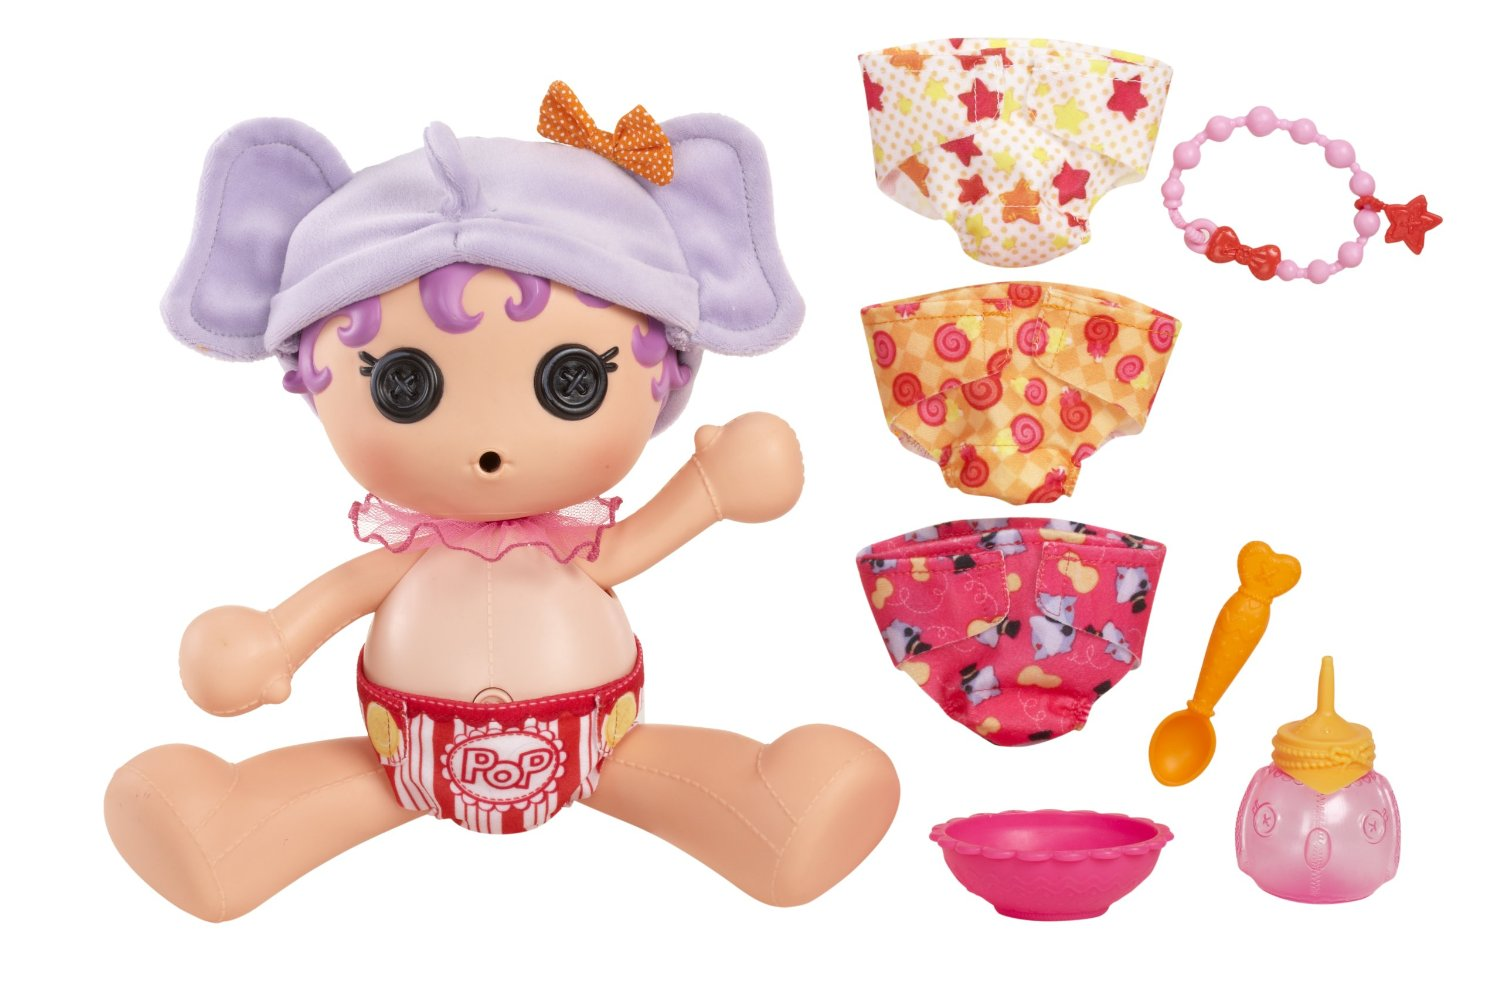 Lalaloopsy Diaper Surprise Dolls Plus Your Chance To Win The